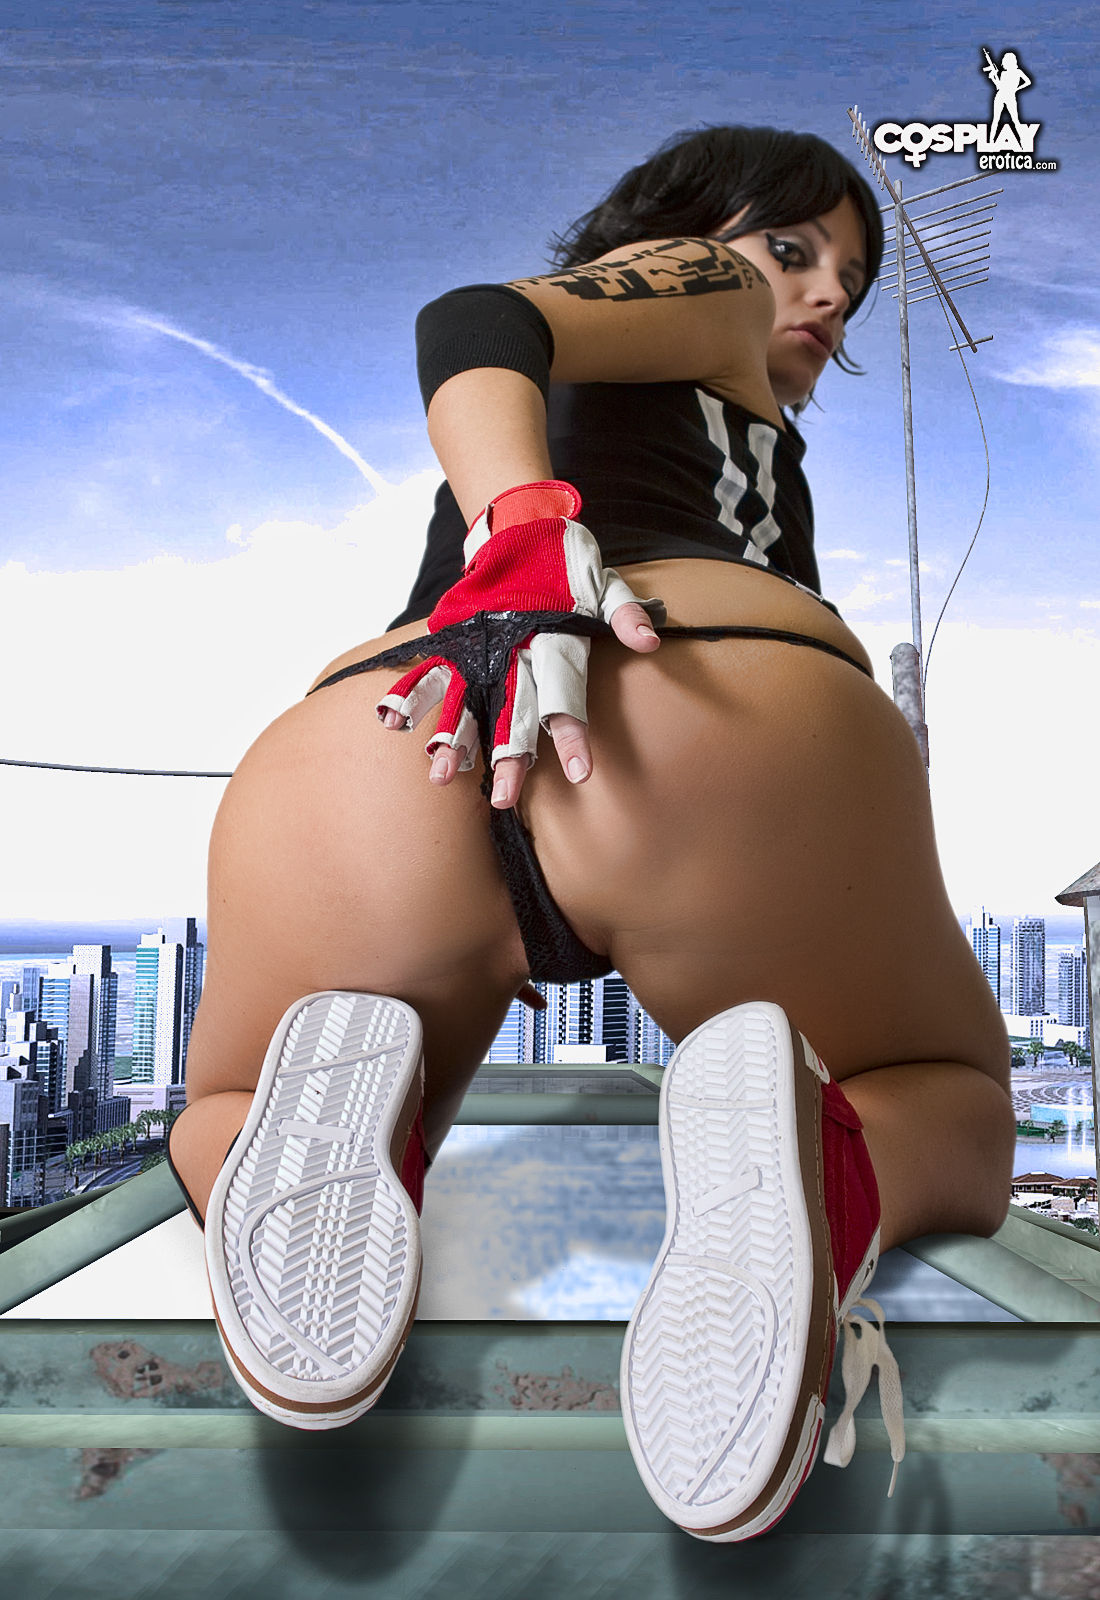 Mirrors edge porn pictures sex videos